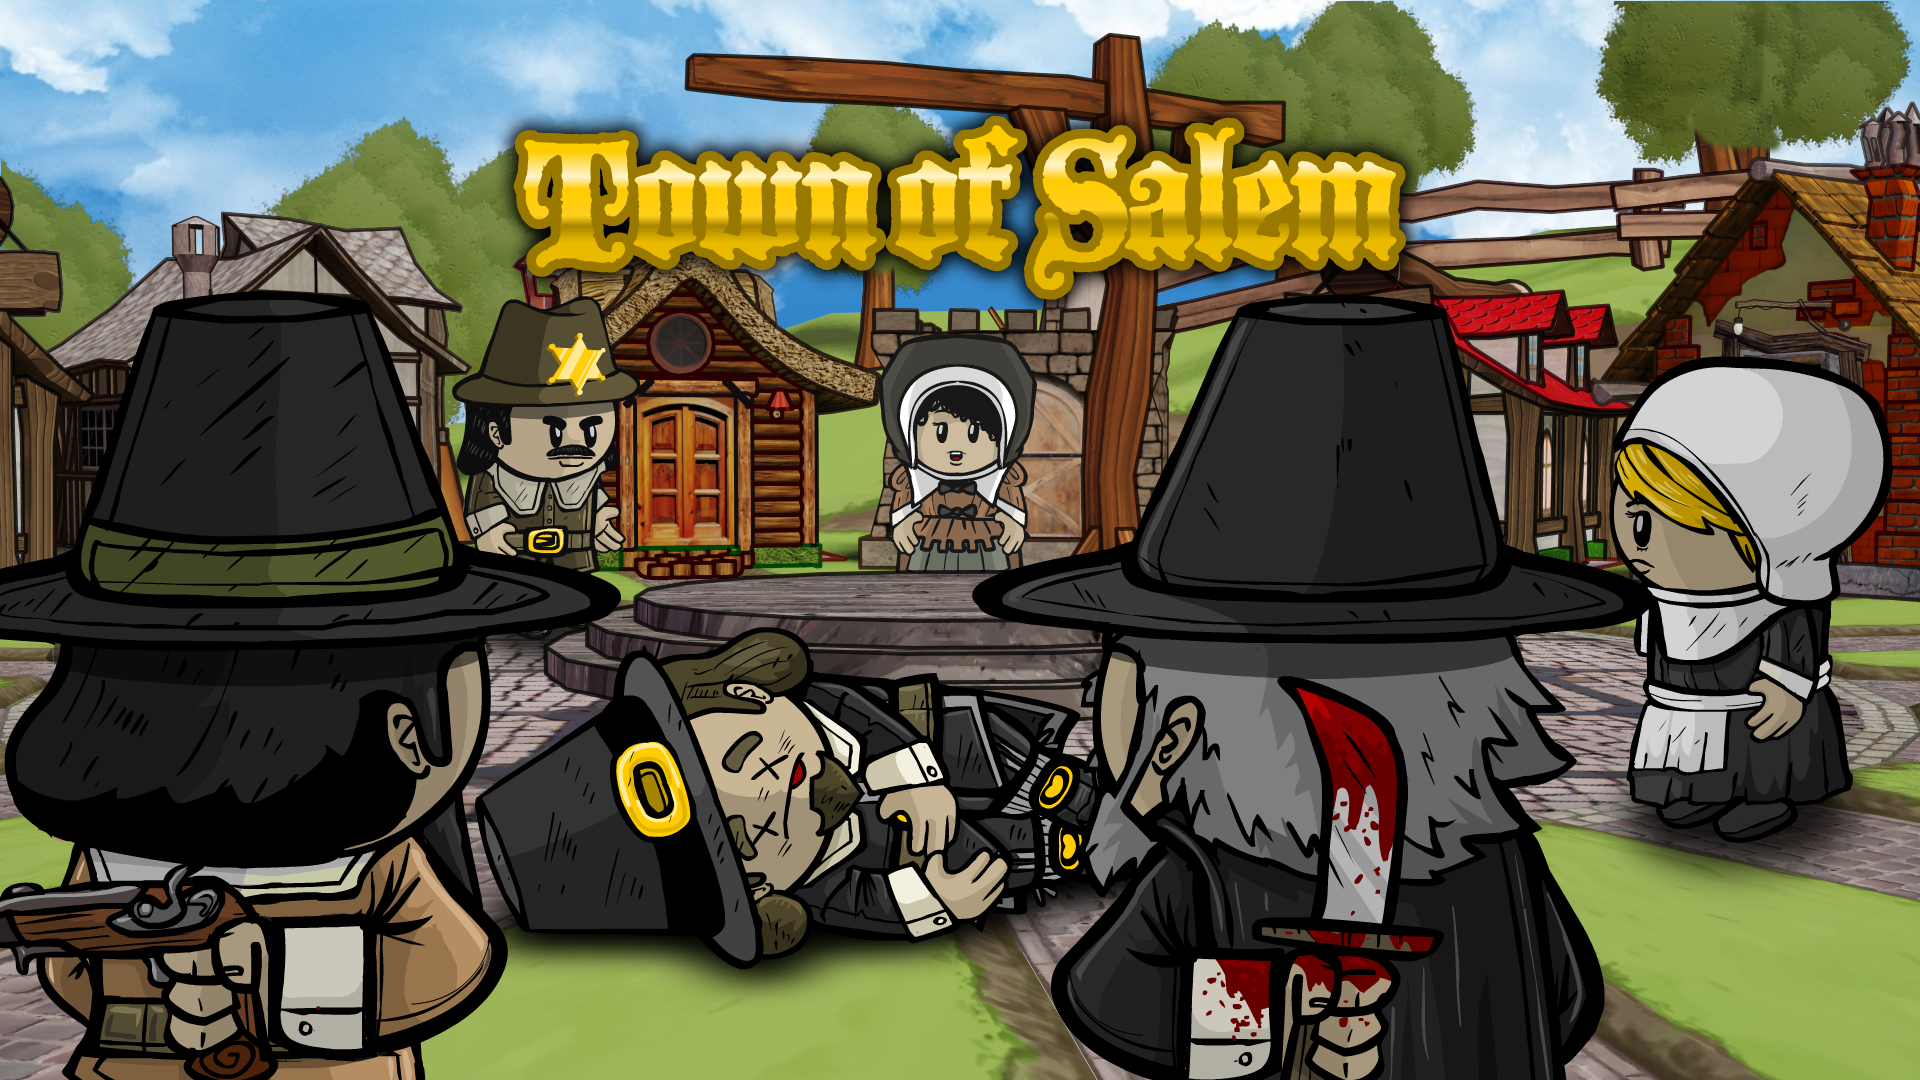 Town of Salem, a popular adaptation of the classic Werewolf